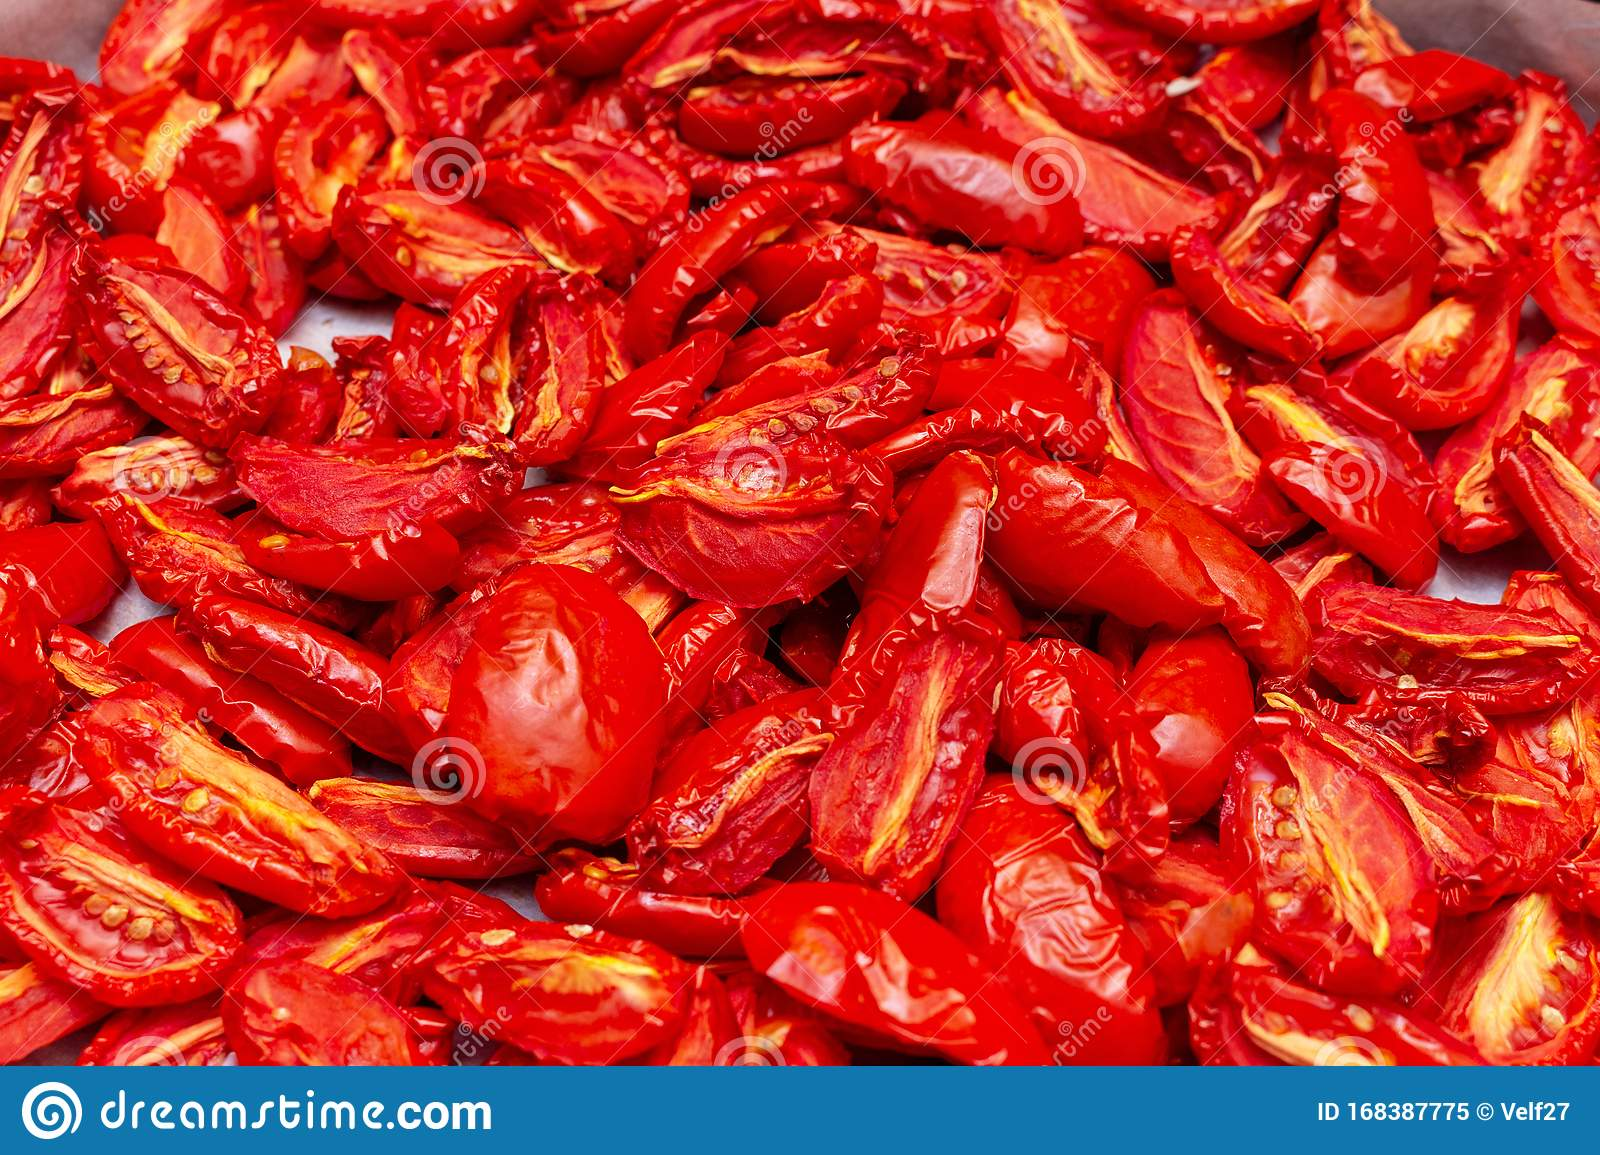 Homemade Dried Red Tomatoes Slices With Basil Oregano Spices Cooking Process Traditional Italian Mediterranean Kitchen Cuisine Stock Image Of Preservation Dish 168387775